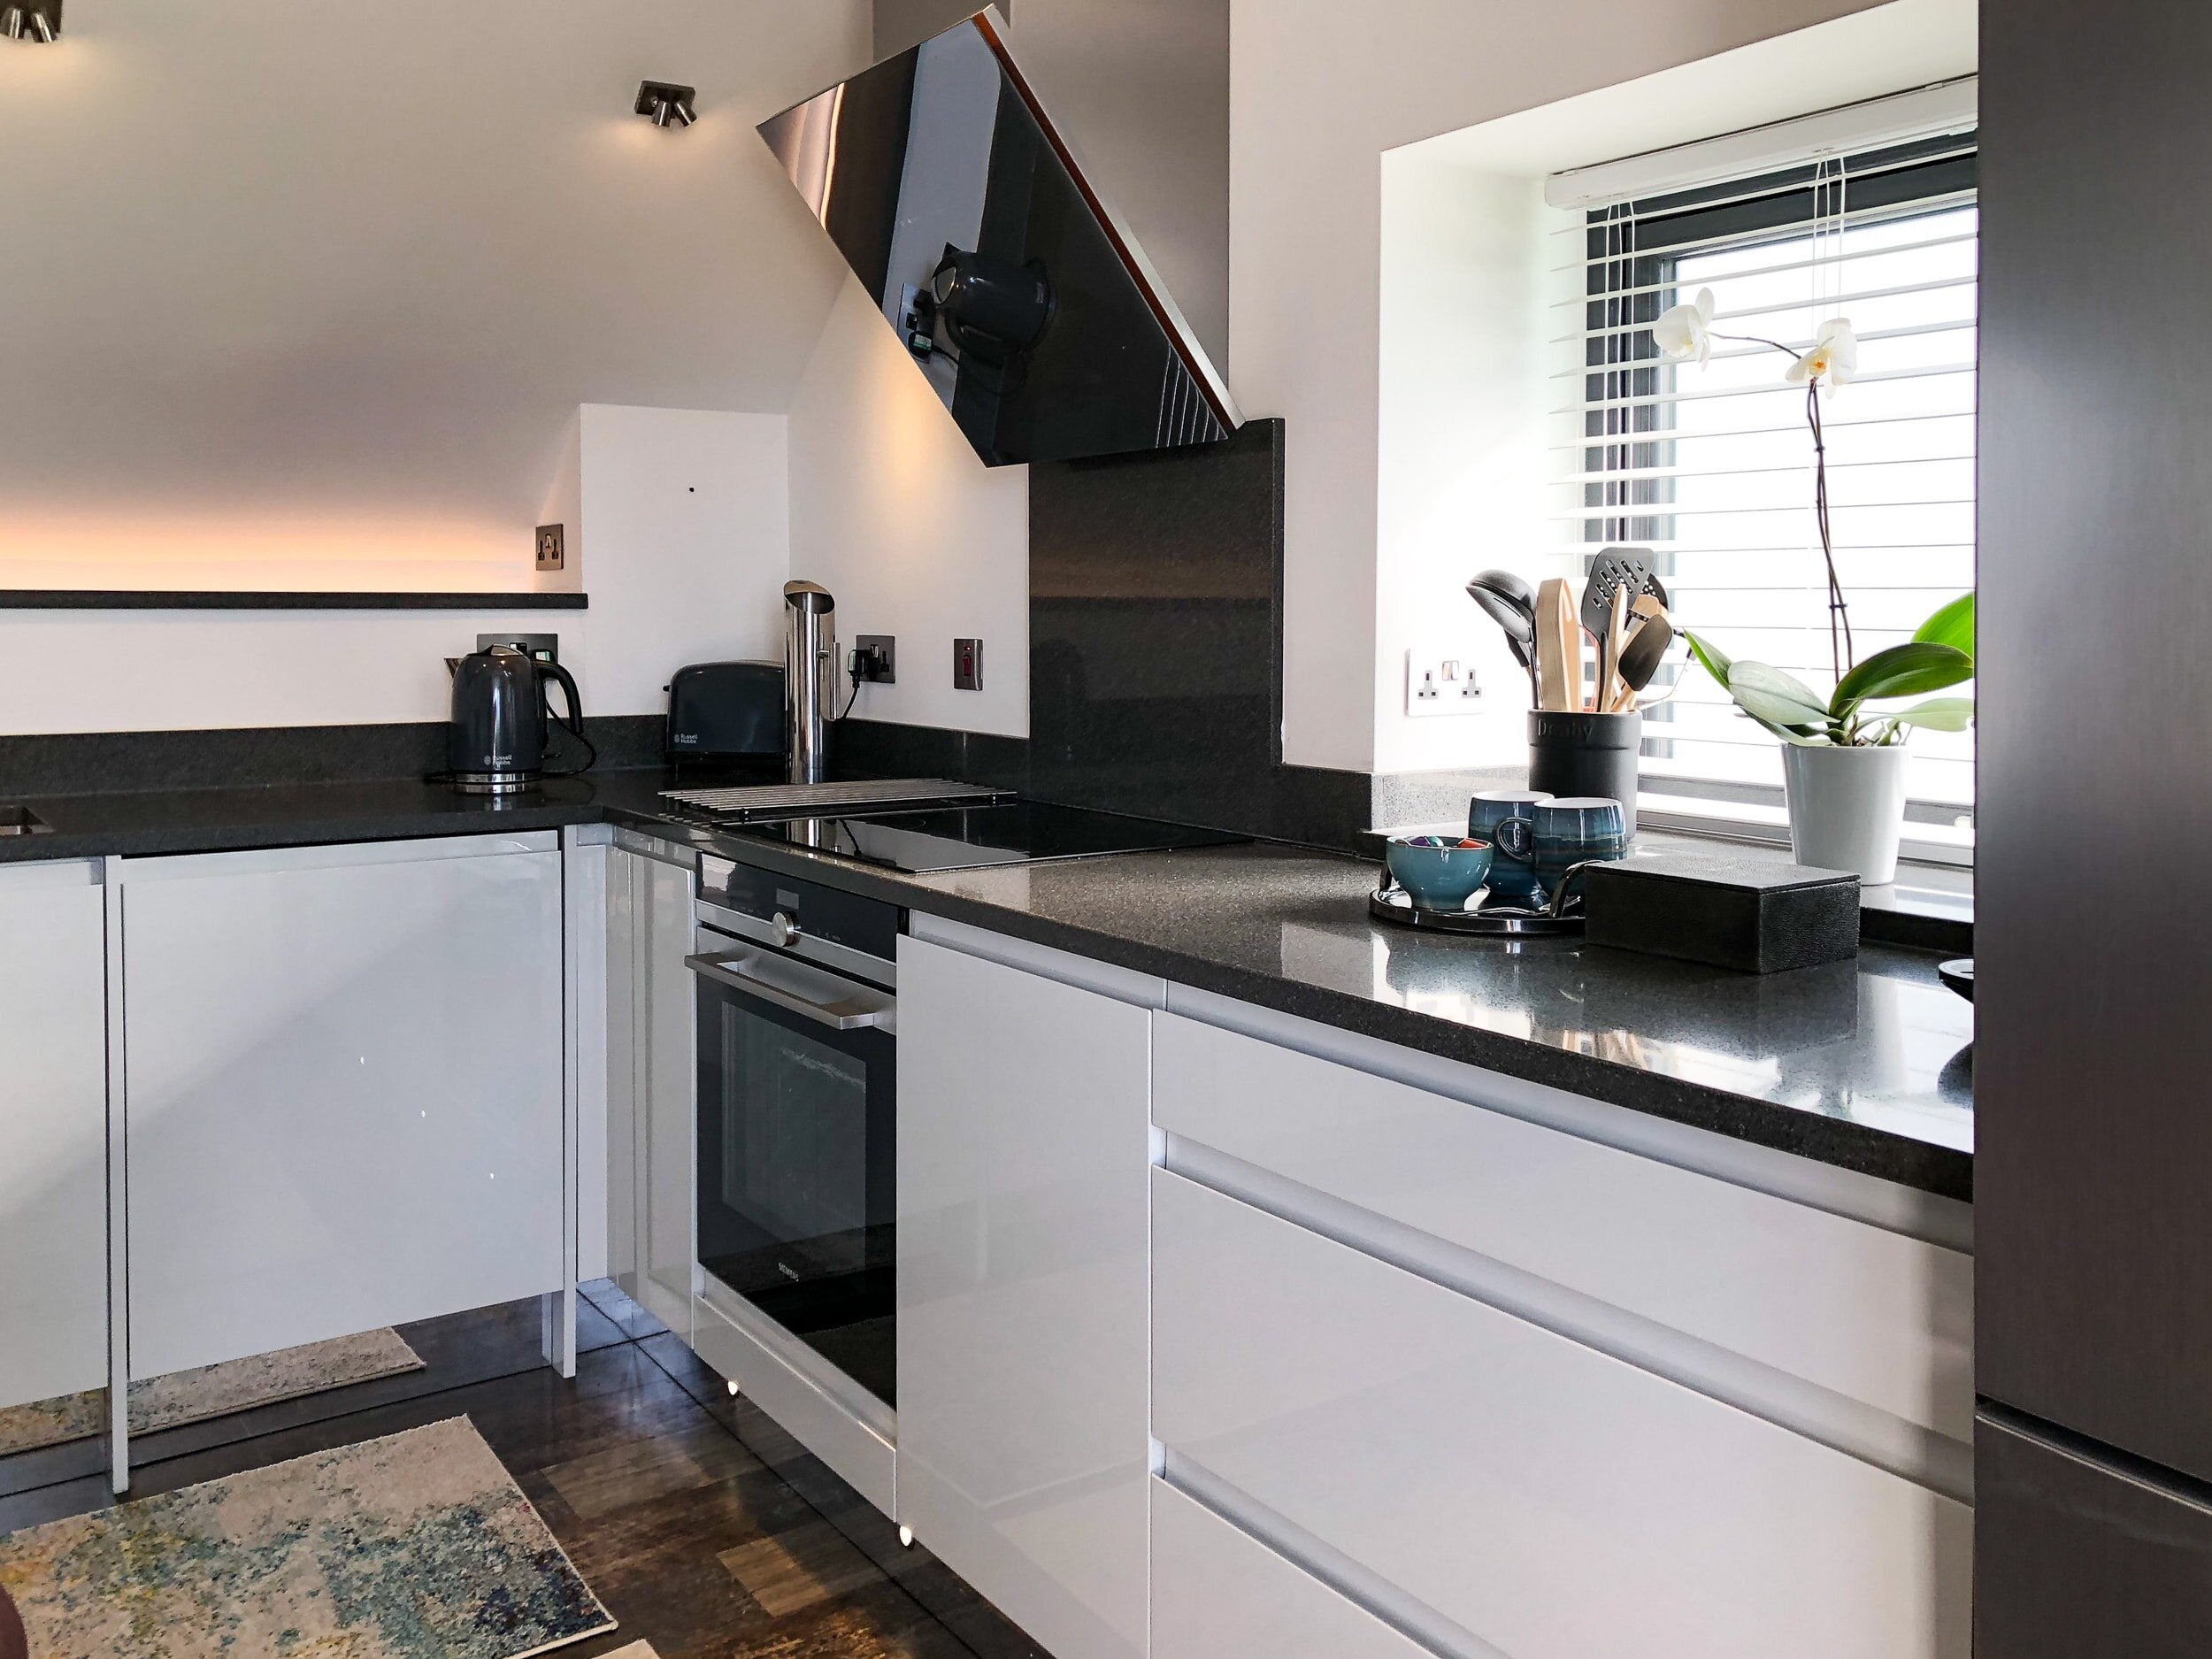 Fully equipped kitchen with stone worktops and LED lighting